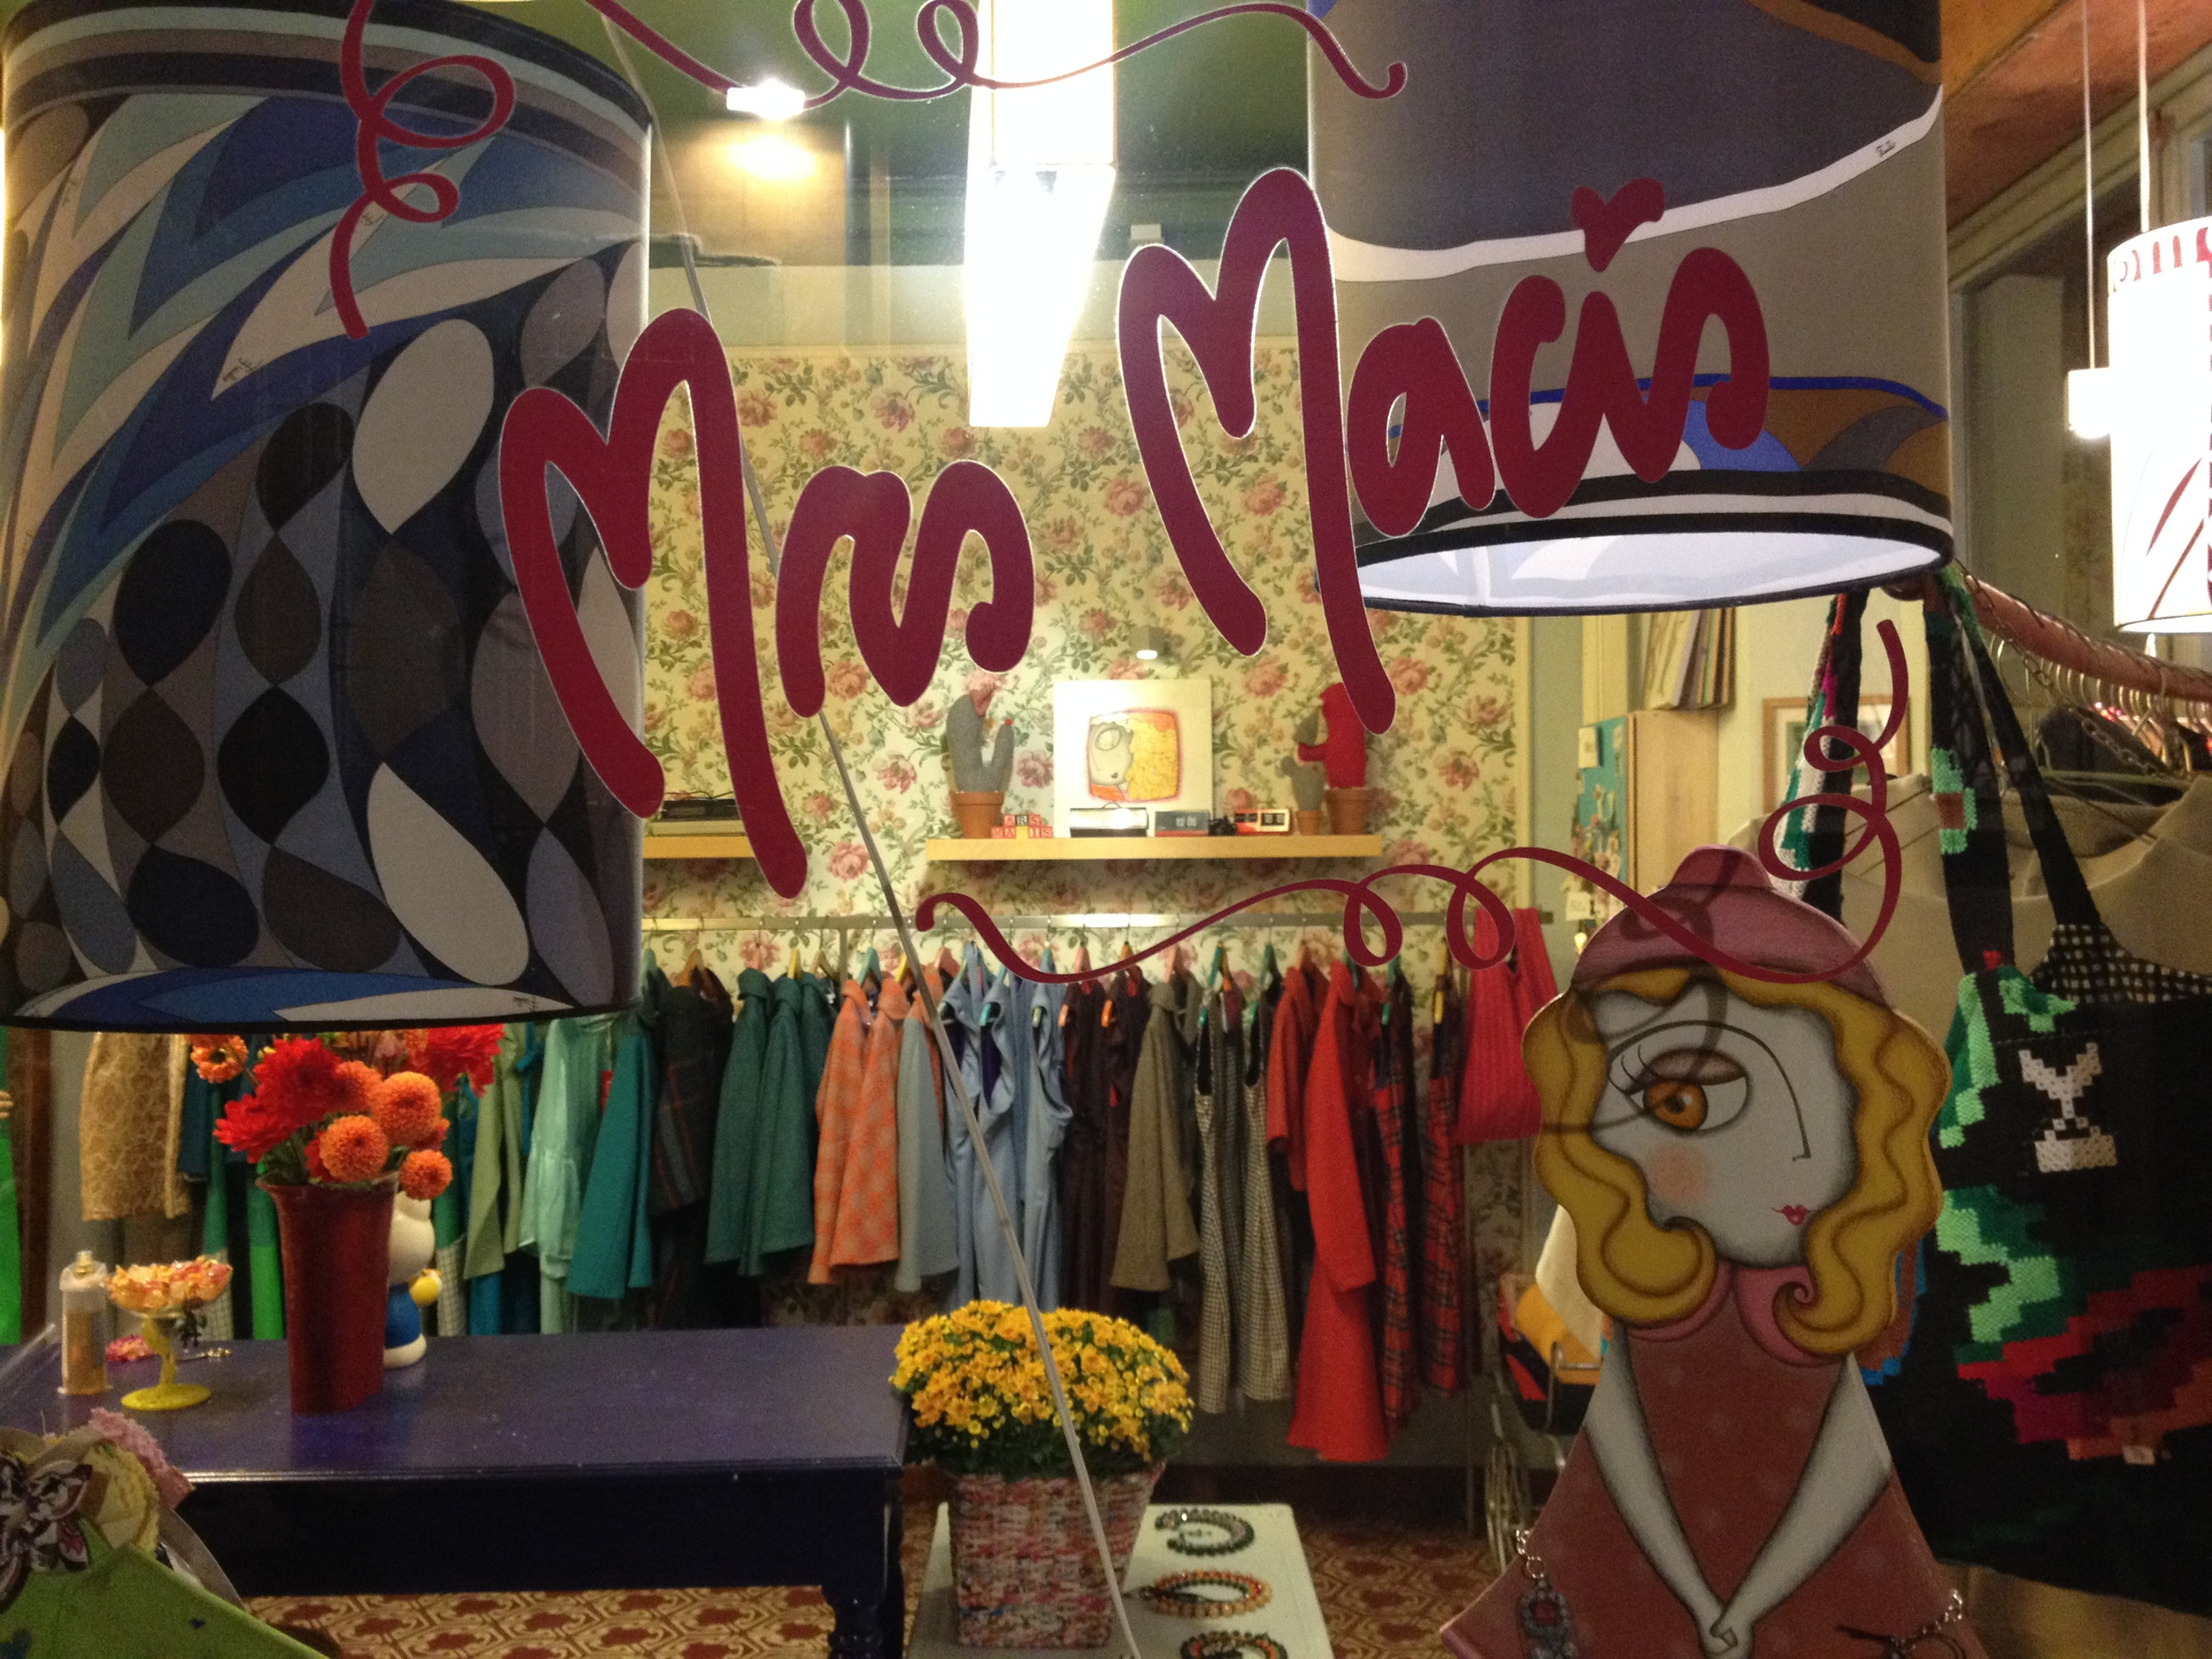 Mrs Macis is a colourful, playful vintage shop.